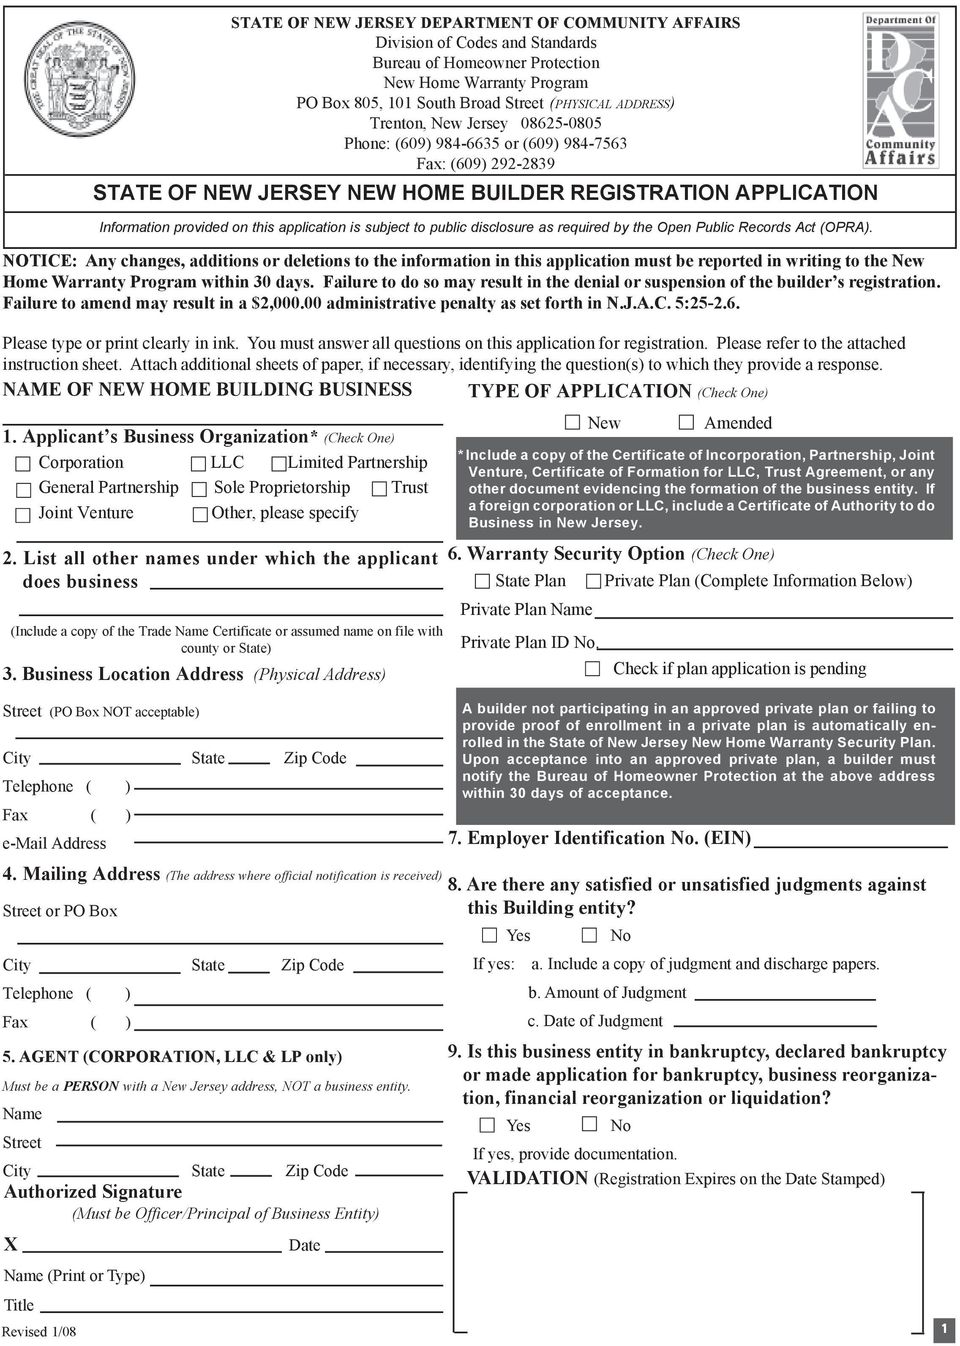 NOTICE: Any changes, additions or deletions to the information in this application must be reported in writing to the New Home Warranty Program within 30 days.